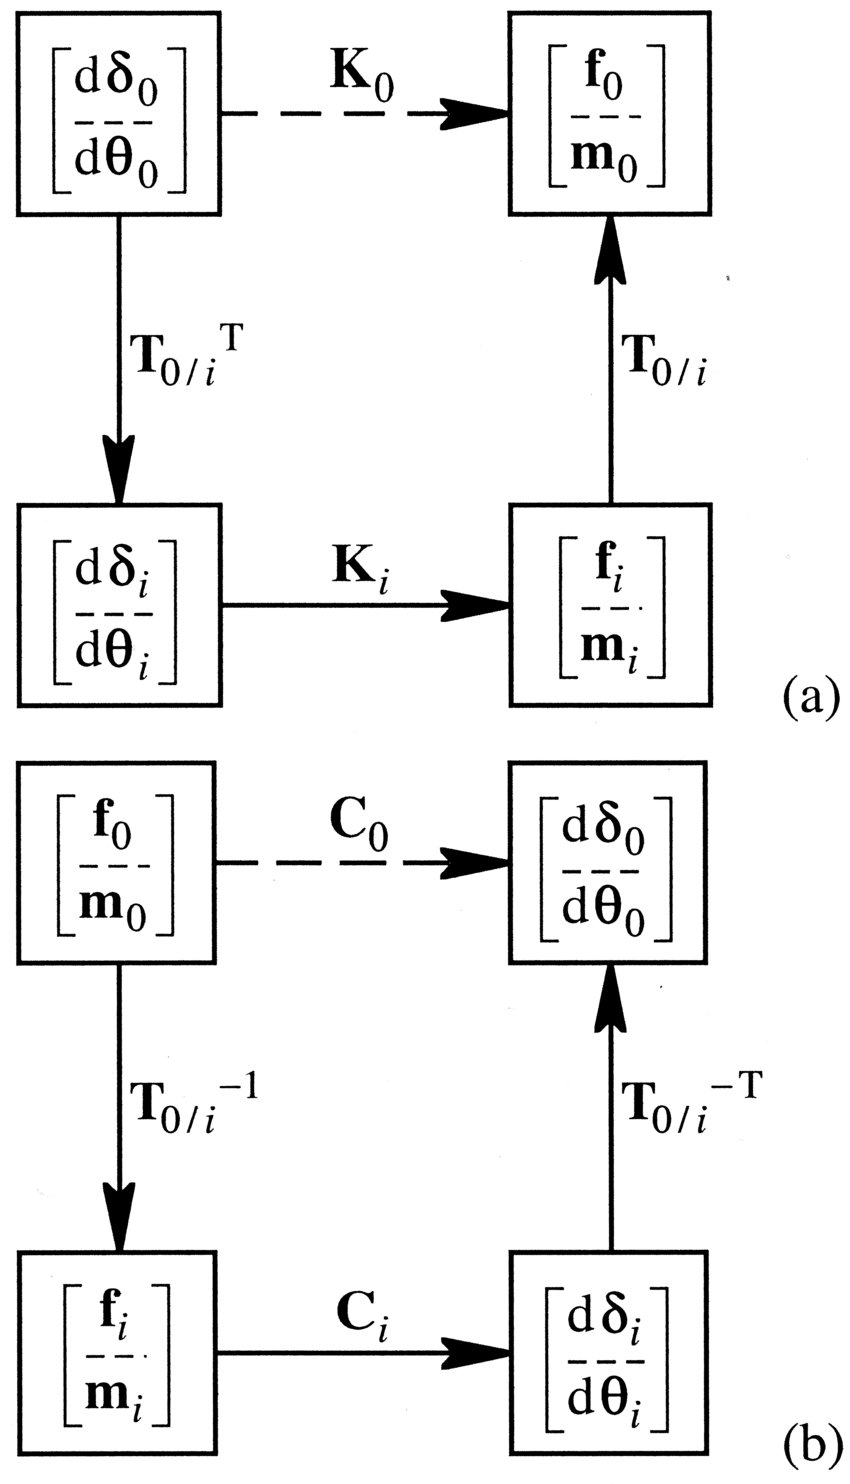 The diagram shows the required process flow for parallel